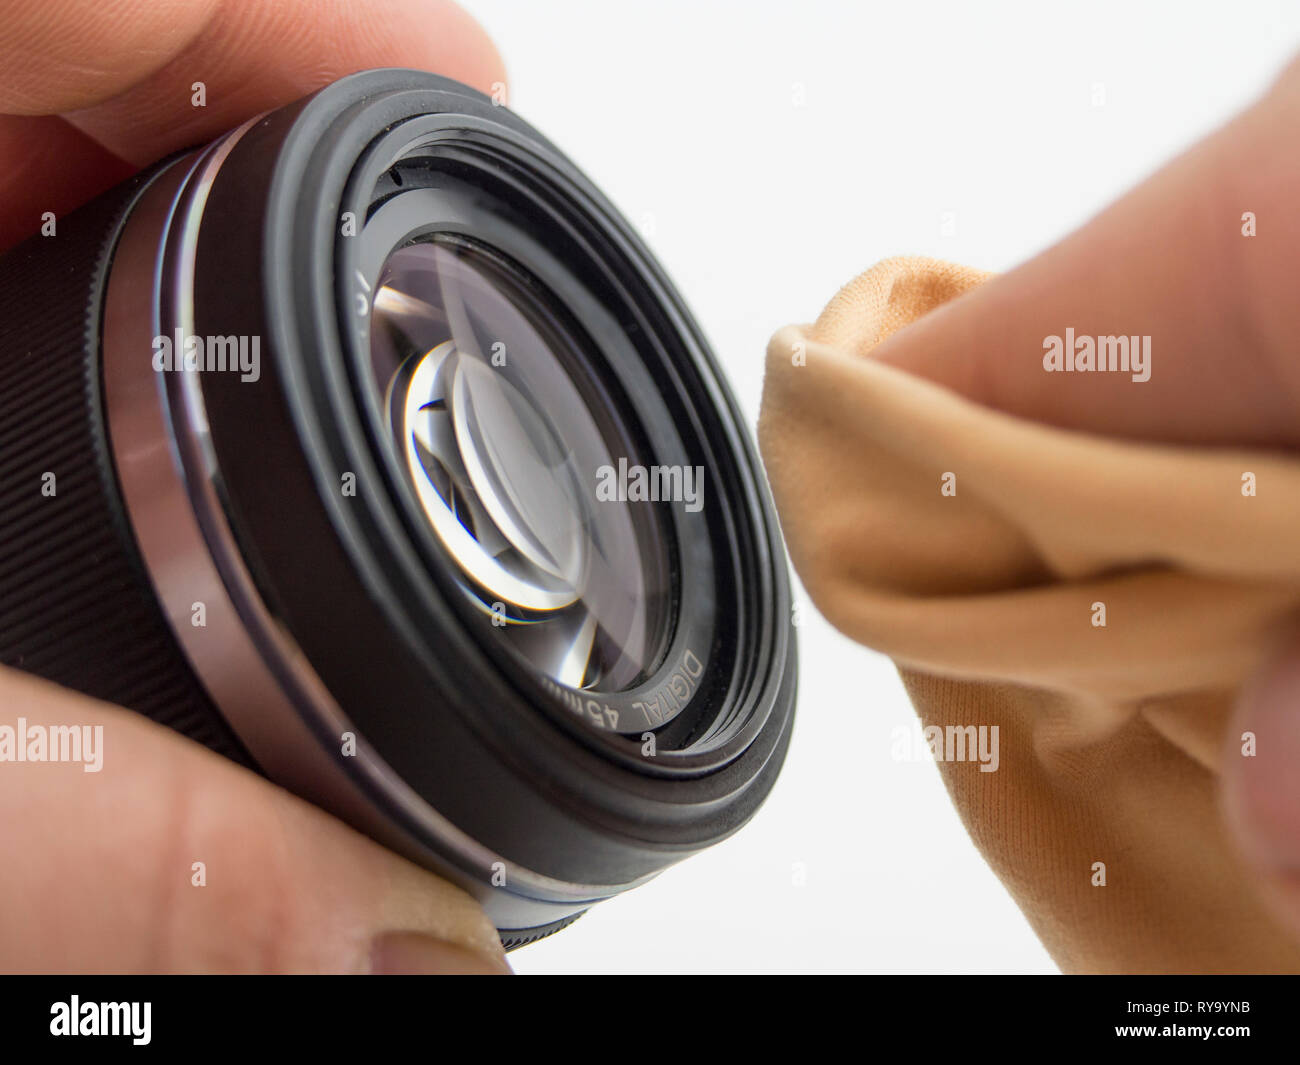 mirrorless system camera lens cleaning. person is cleaning the lens with a cloth - Stock Image